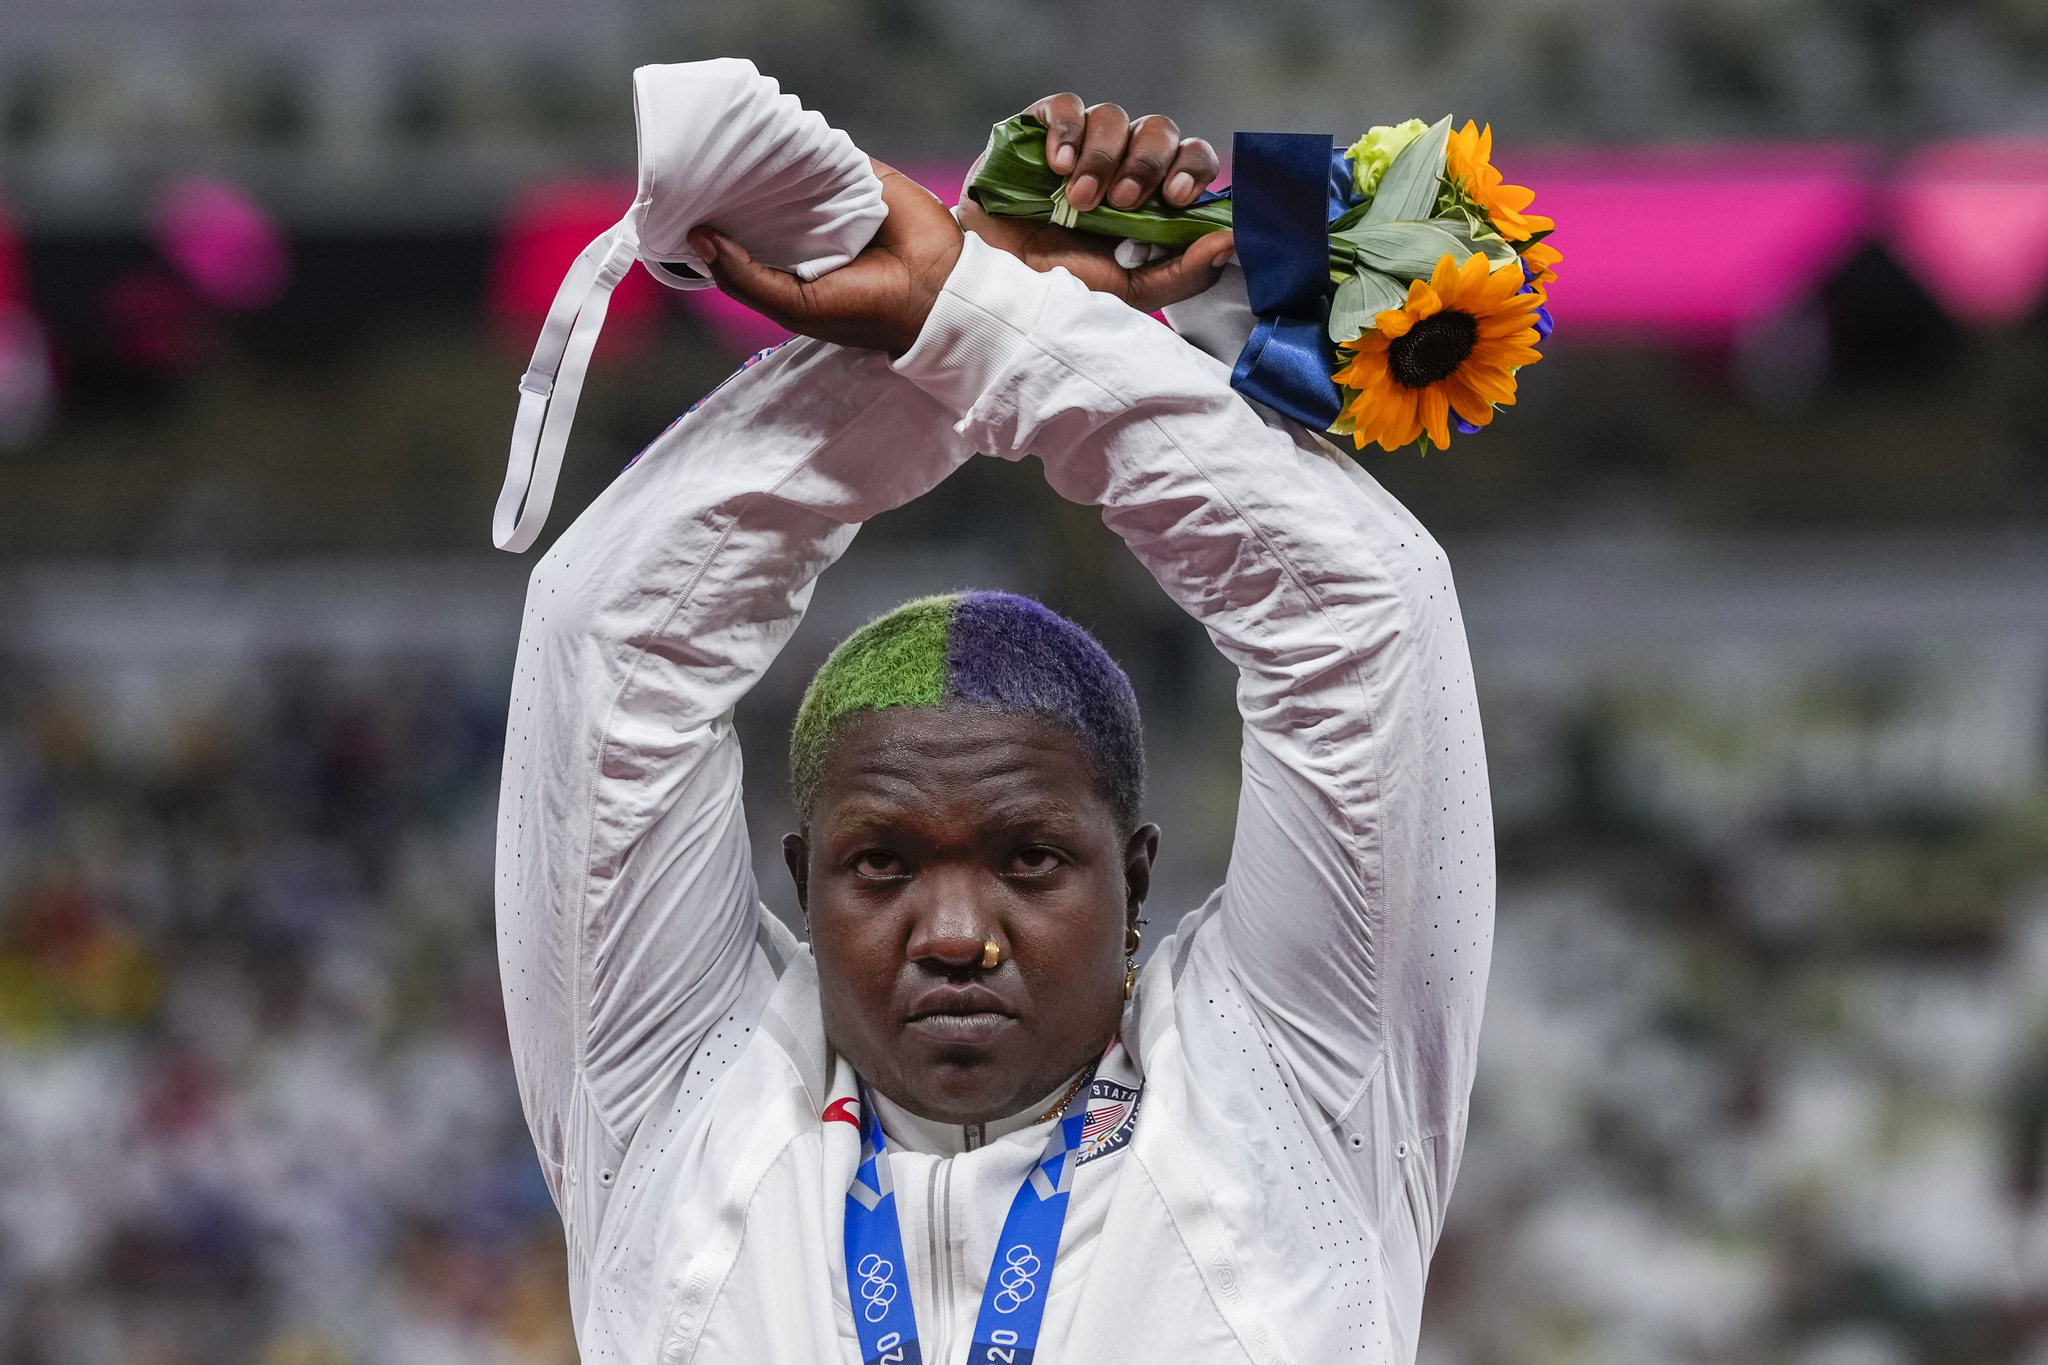 USA's Raven Saunders poses with her silver medal after the women's shot put event.